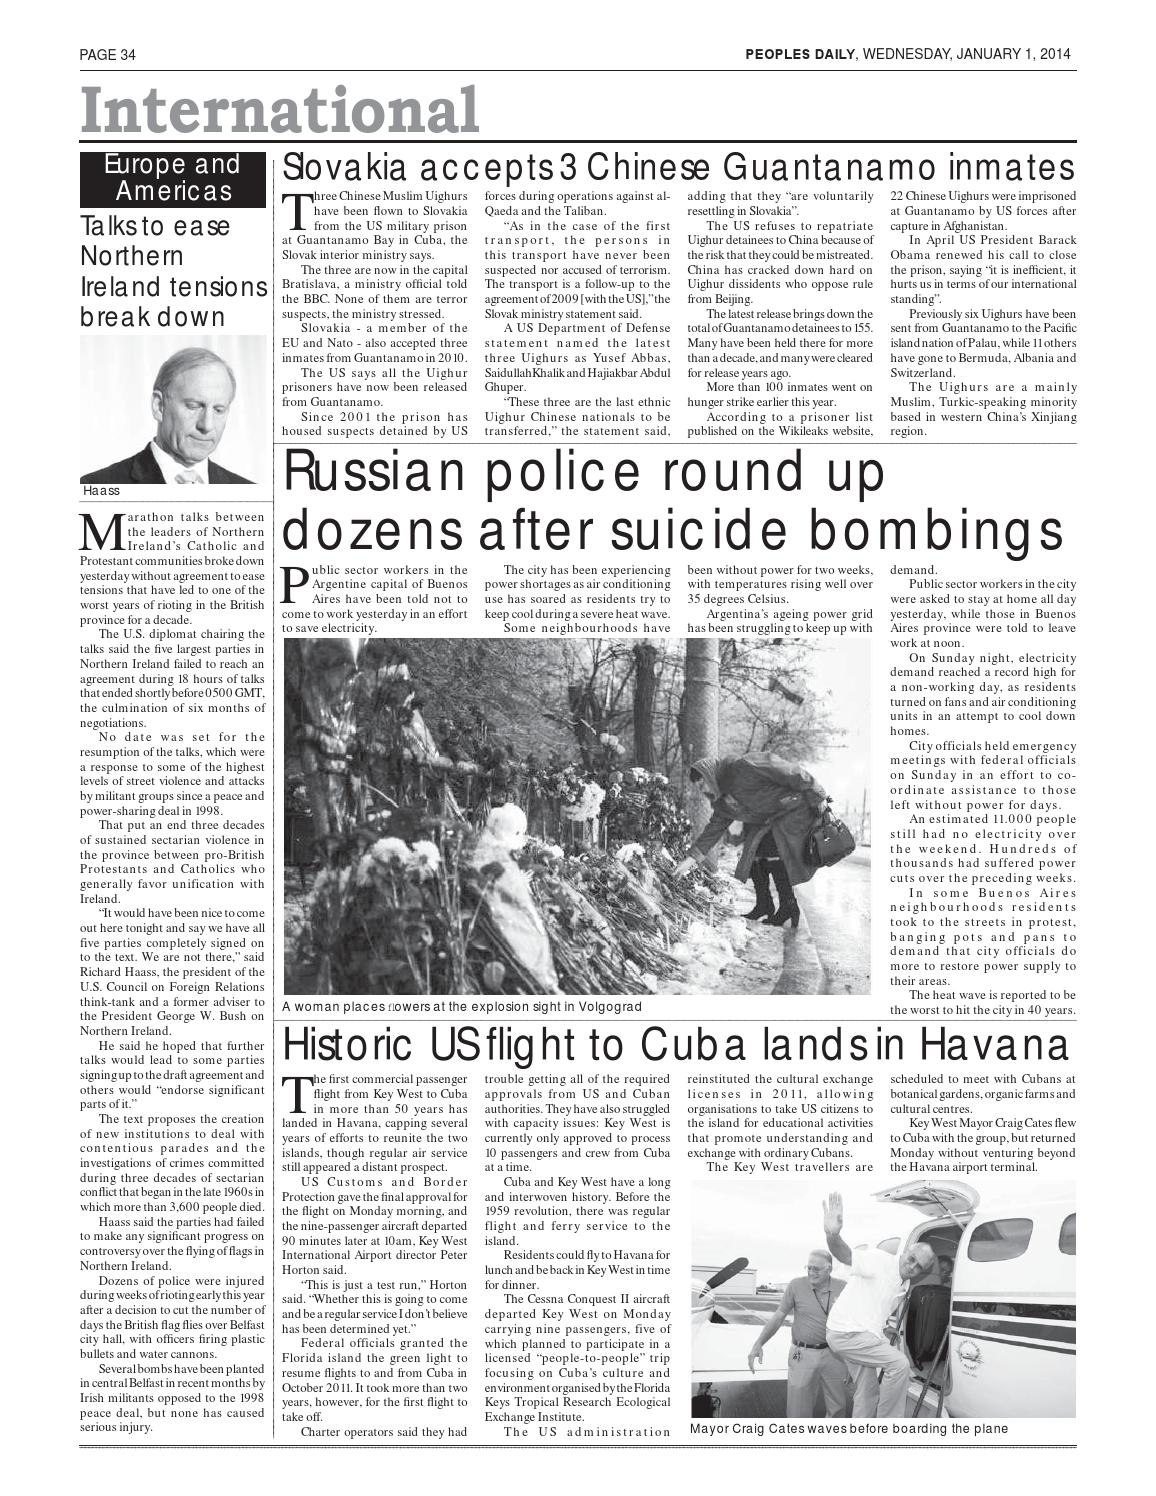 Peoples Daily Newspaper, Wednesday 01, January, 2014 by